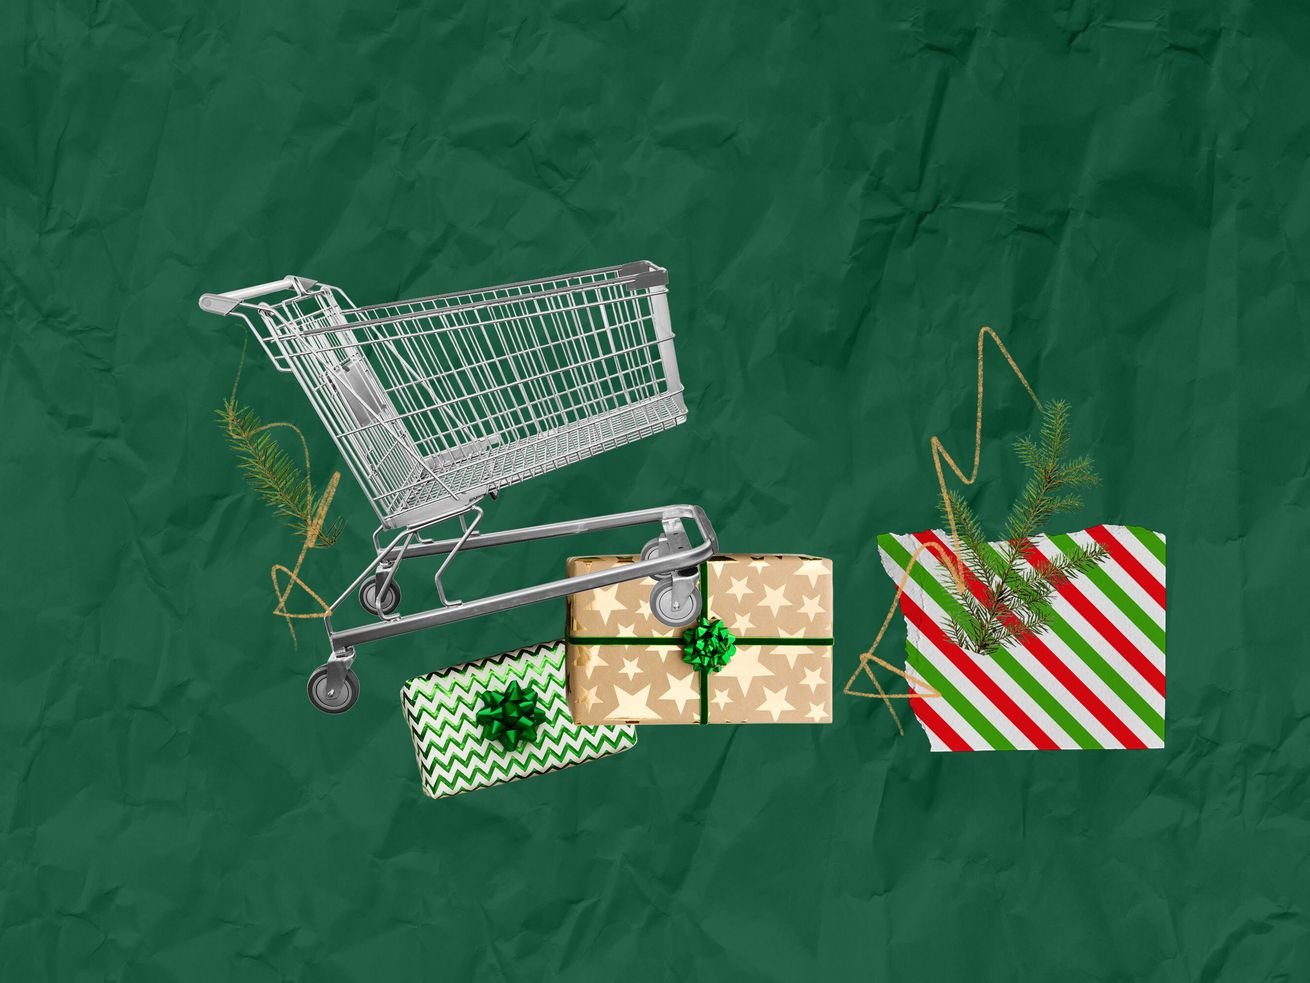 Christmas 2020 gift guide: When Santa needs help finding unique gifts for hard-to-shop-for family, friends